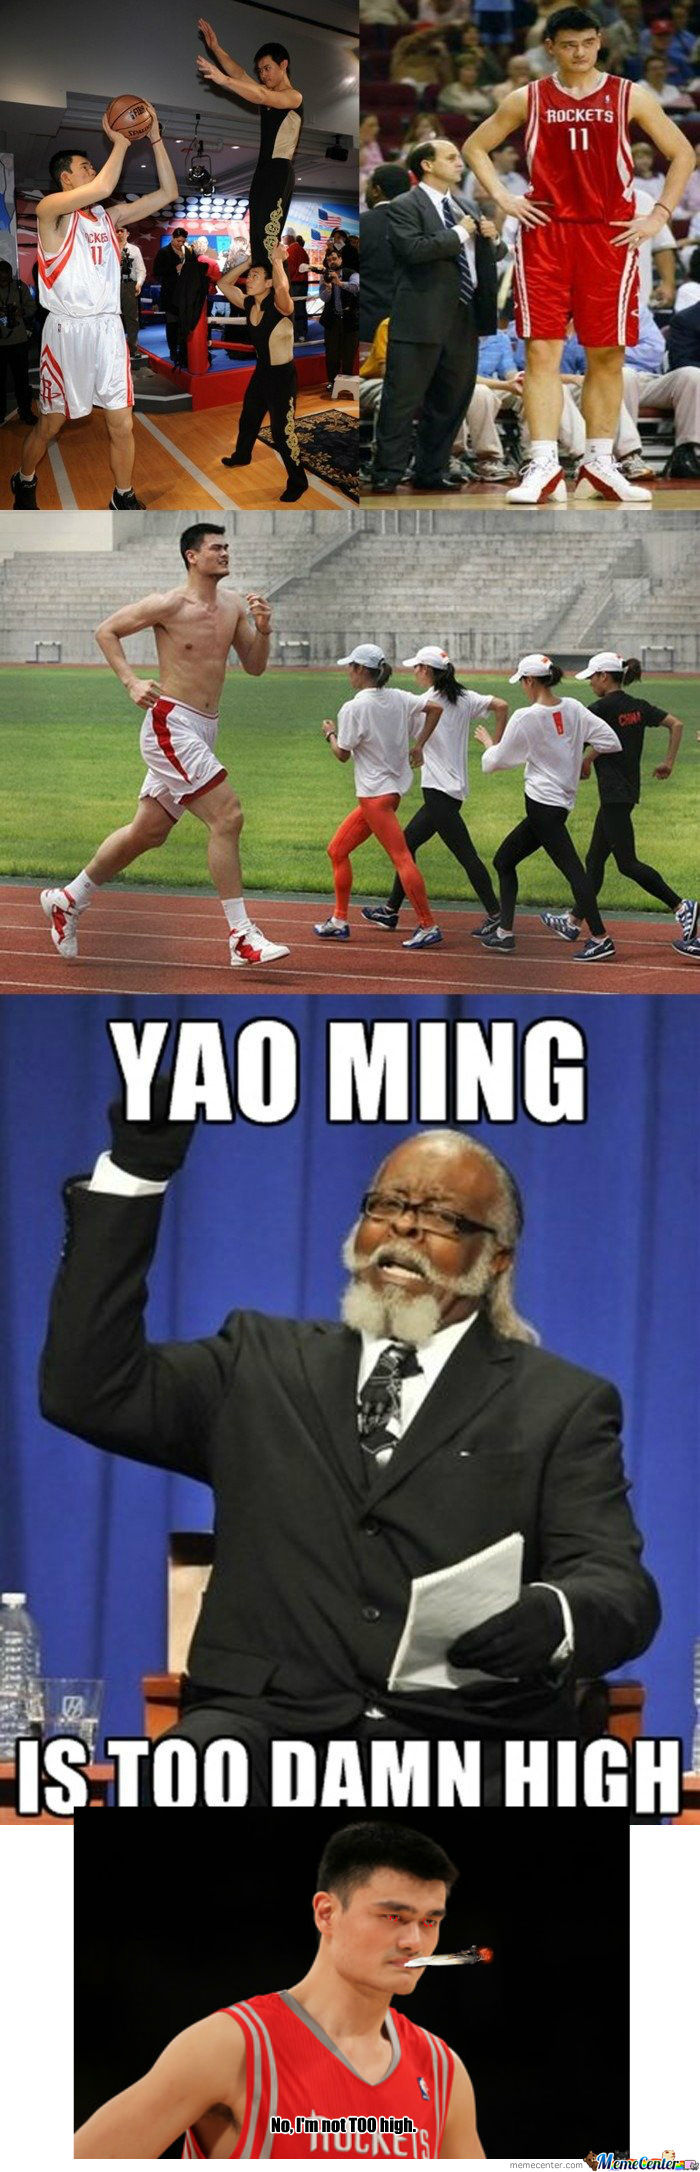 [RMX] Yao Ming is too damn high